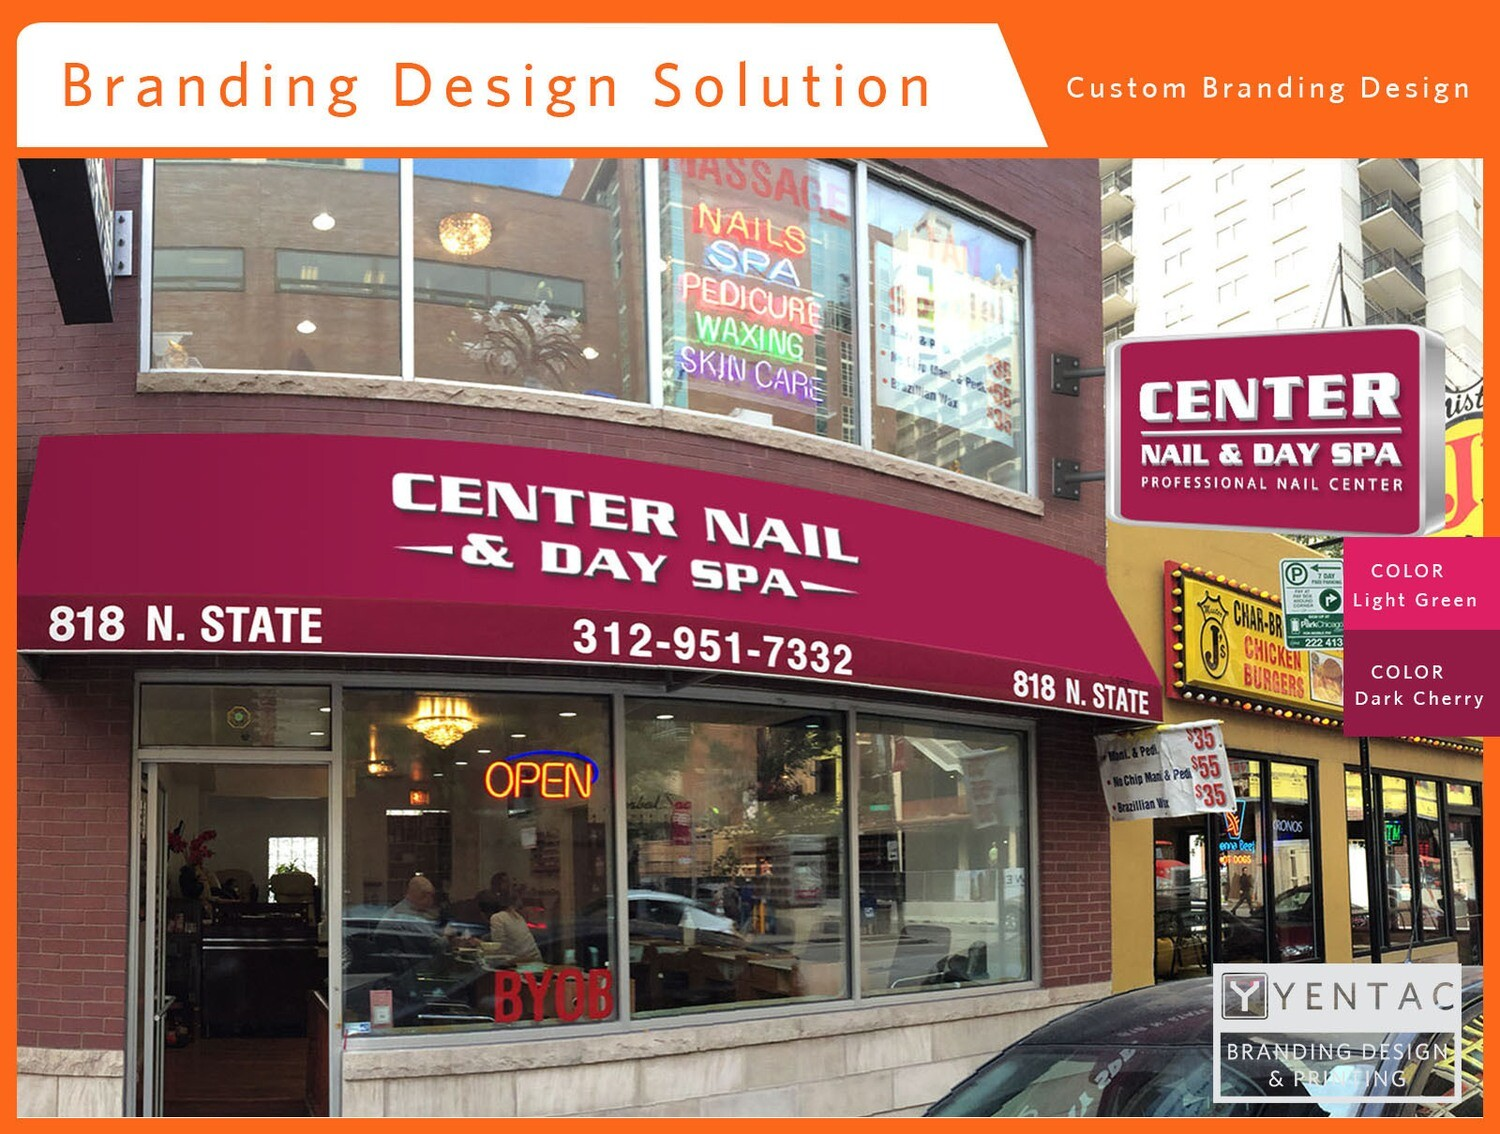 00 - Branding Design - Nail Salon #5053 Center Brand